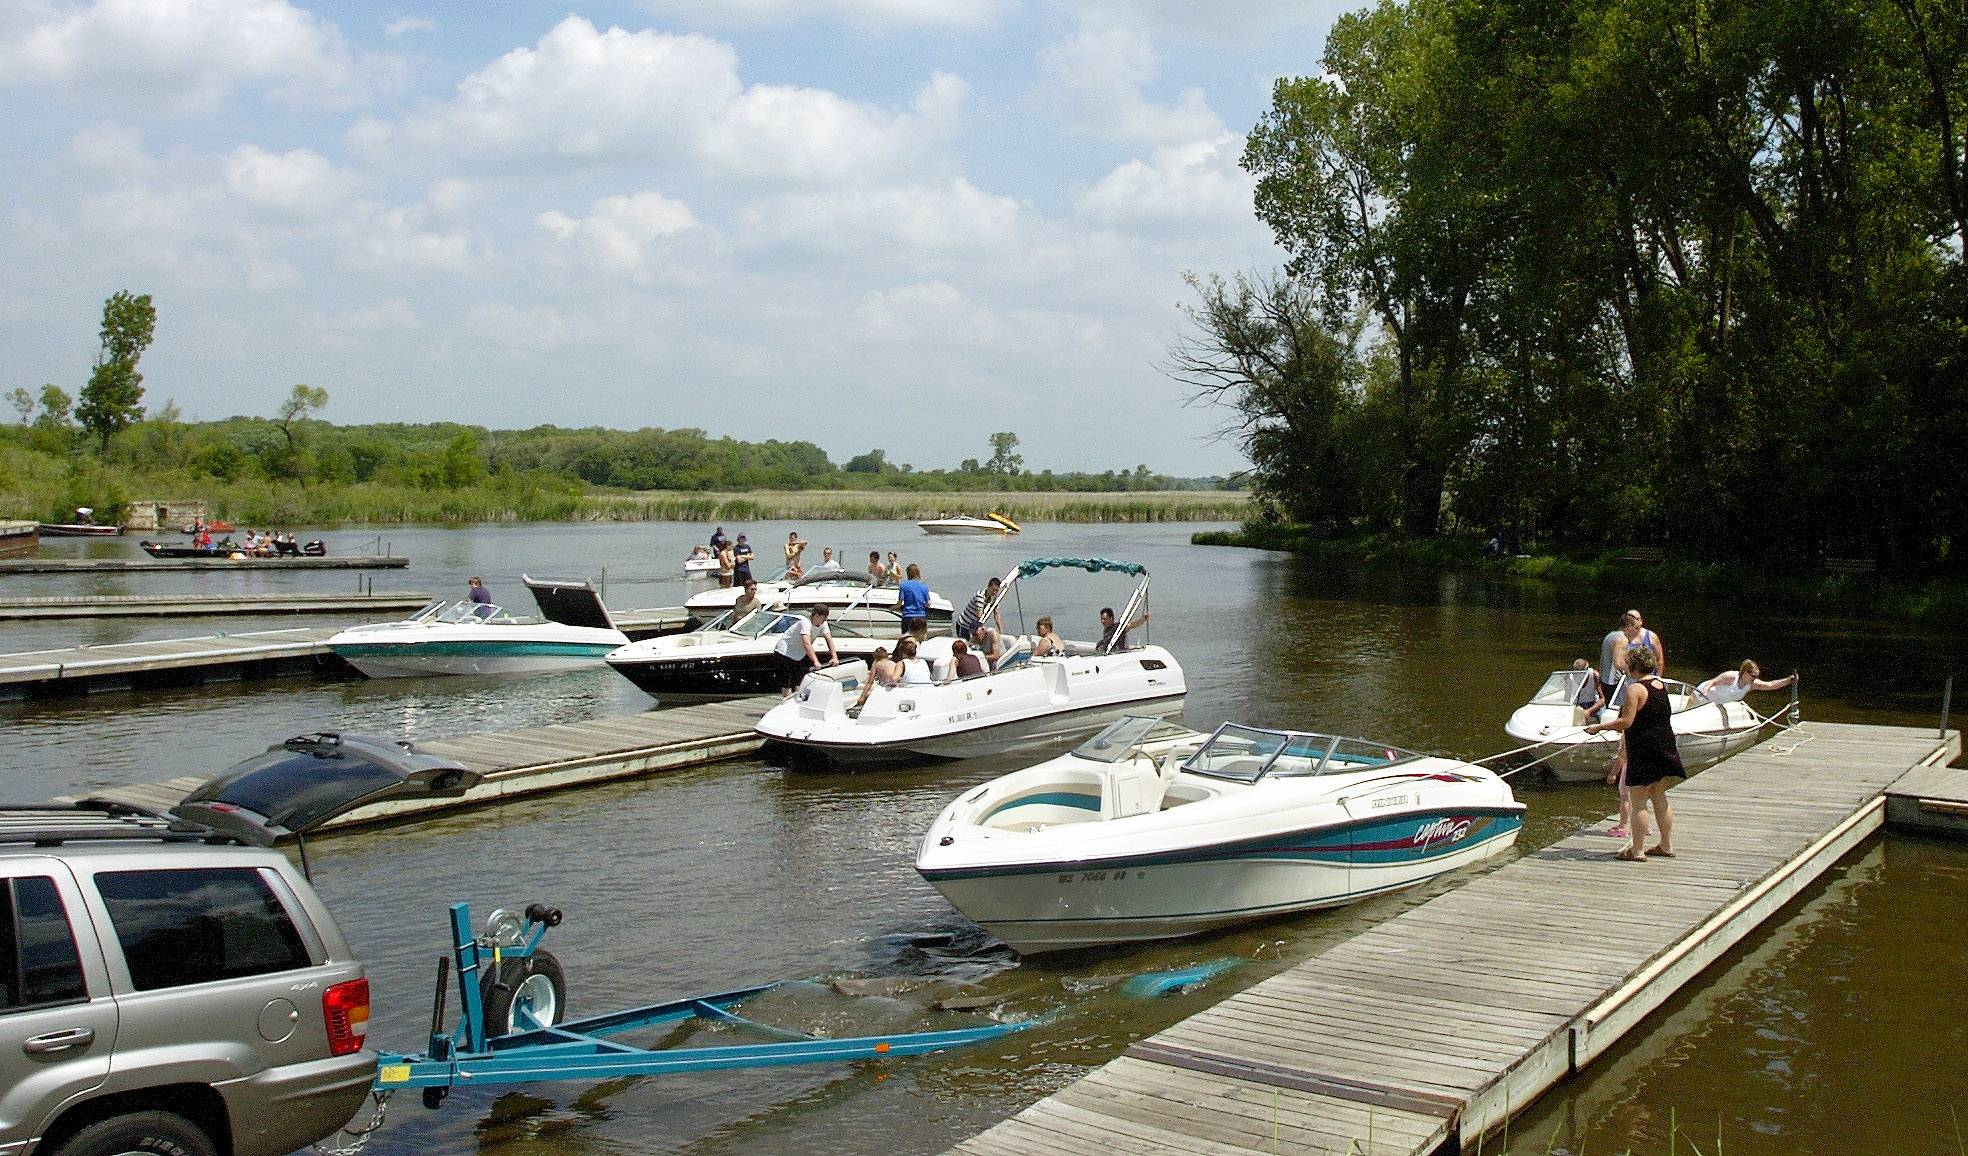 The boat launch at Chain O' Lakes State Park receives a lot of traffic from fisherman and pleasure boaters alike.